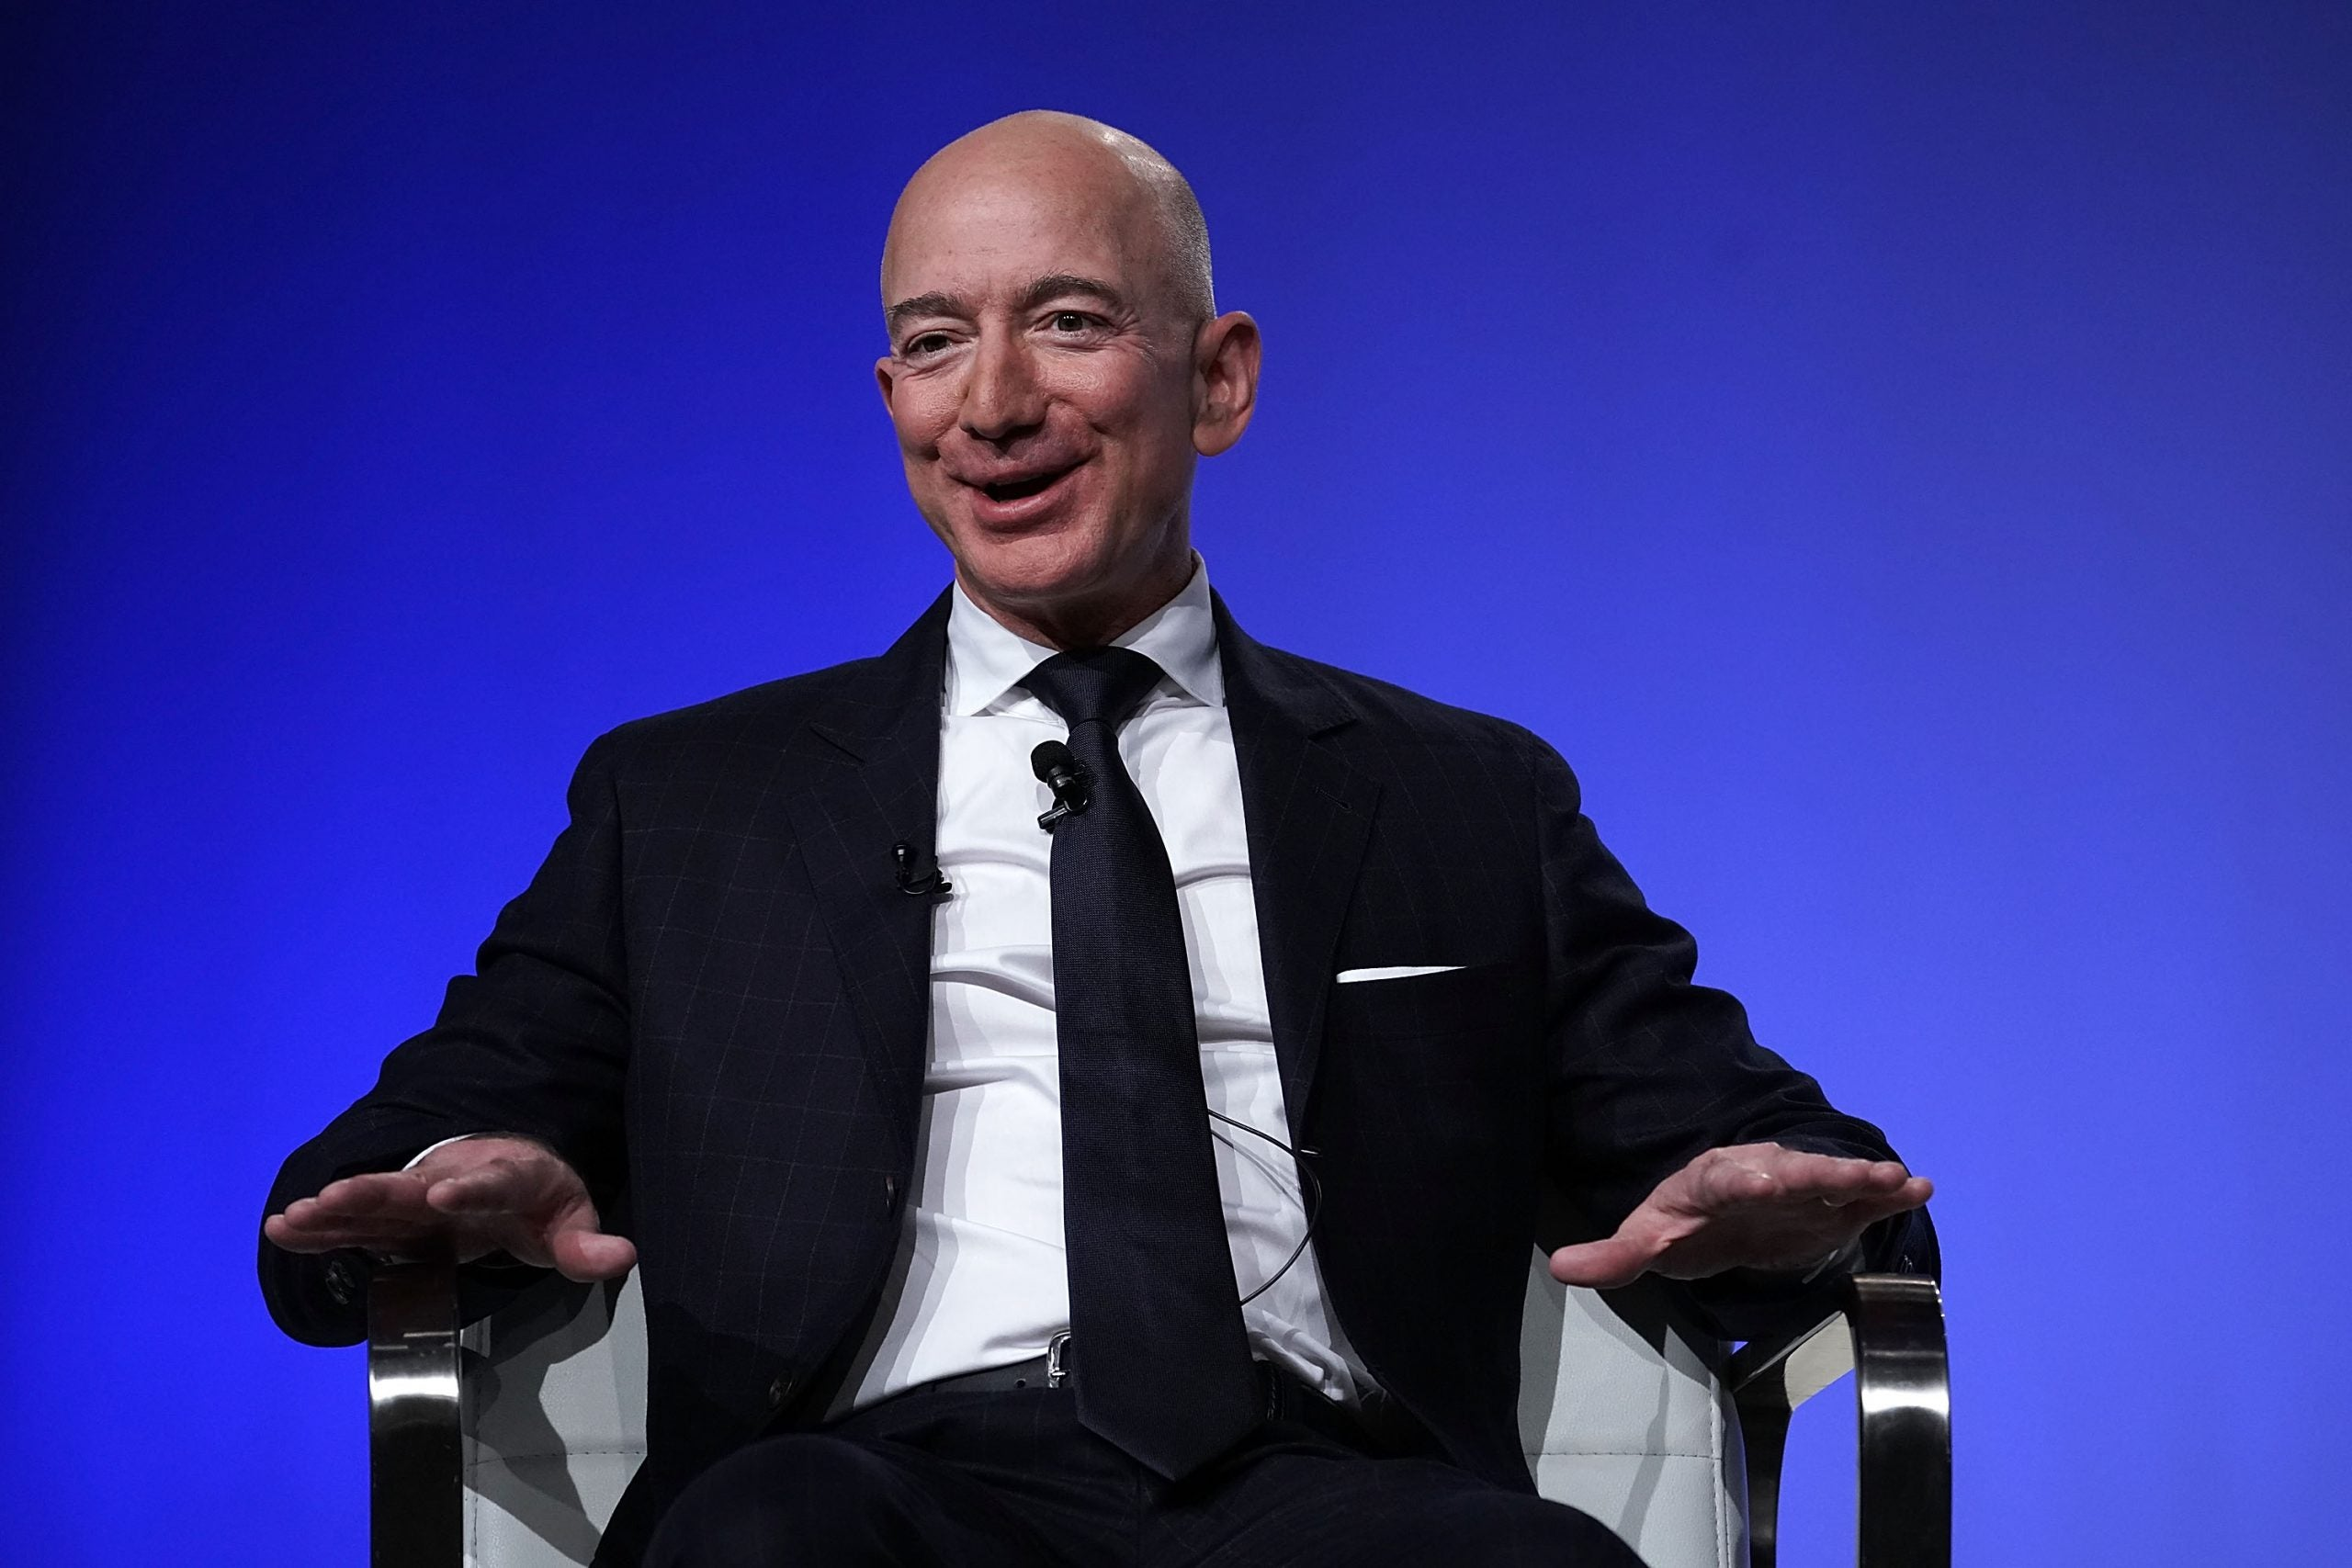 Inside the Brain of Jeff Bezos is a blandly positive portrait of one of the world's most powerful and divisive figures